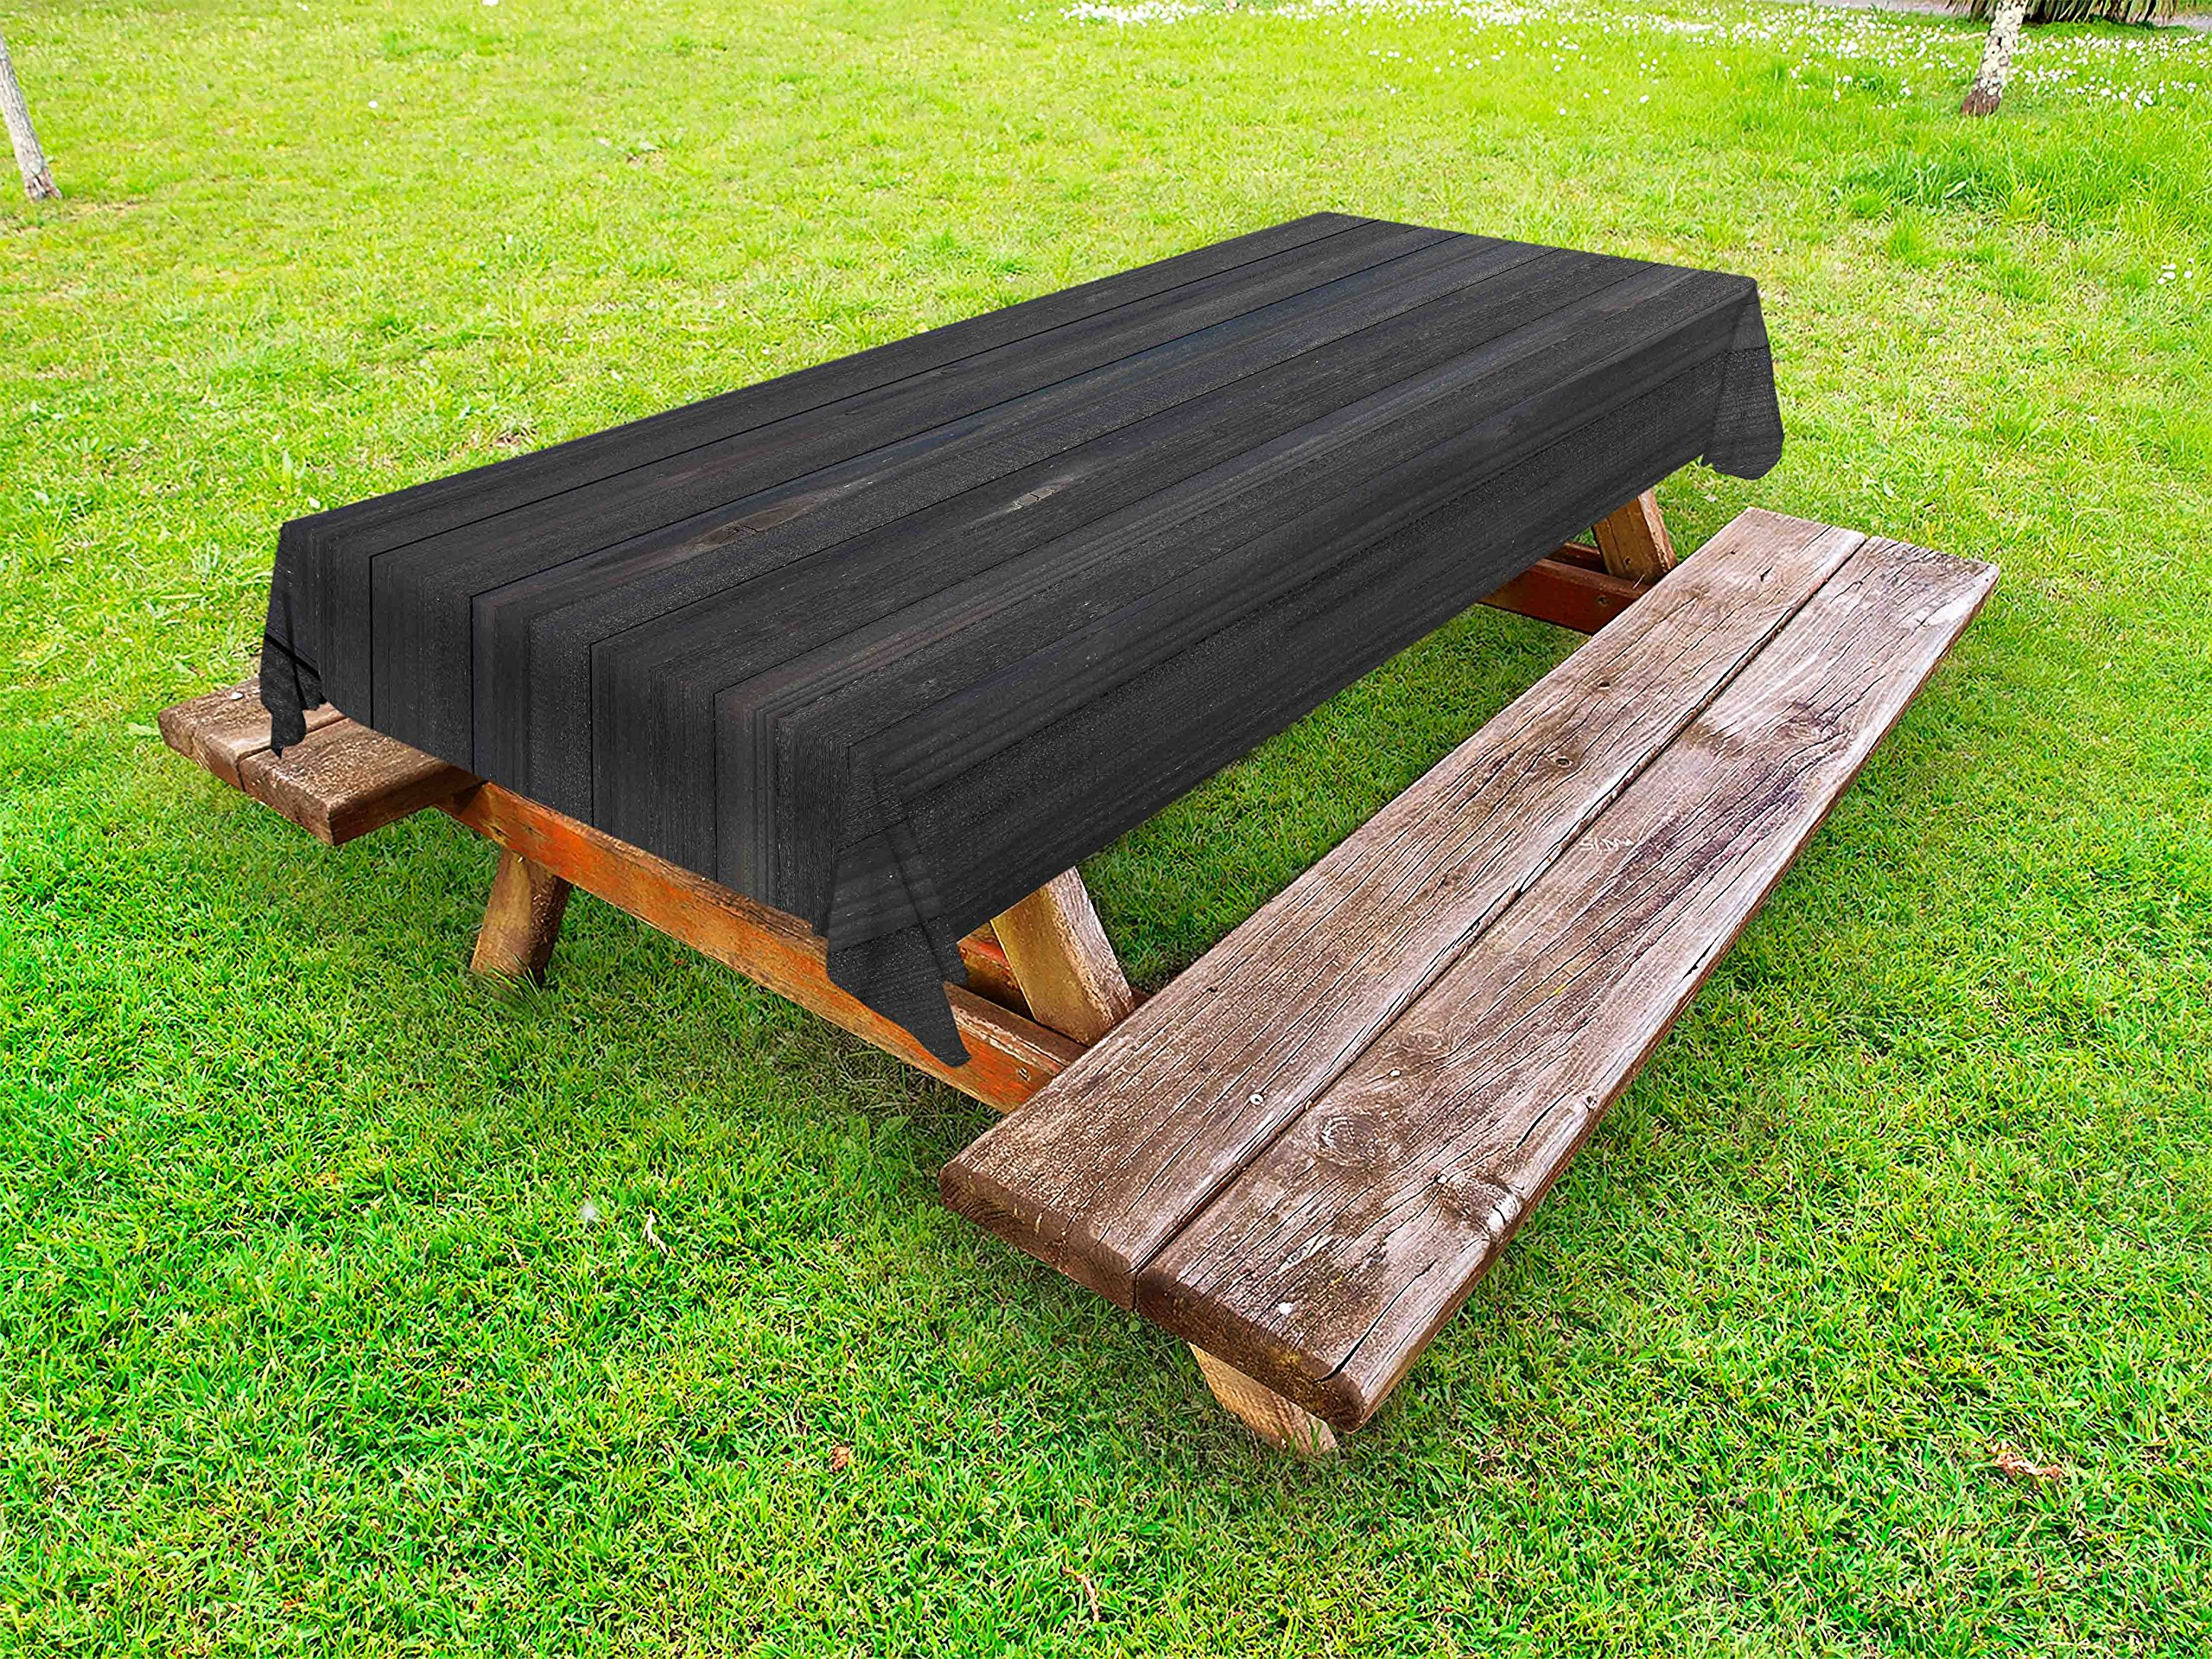 Ambesonne Dark Grey Outdoor Tablecloth, Wood Fence Texture Image Rough Rustic Weathered Surface Timber Oak Planks, Decorative Washable Picnic Table Cloth, 58 X 84 inches, Dark Grey Blue